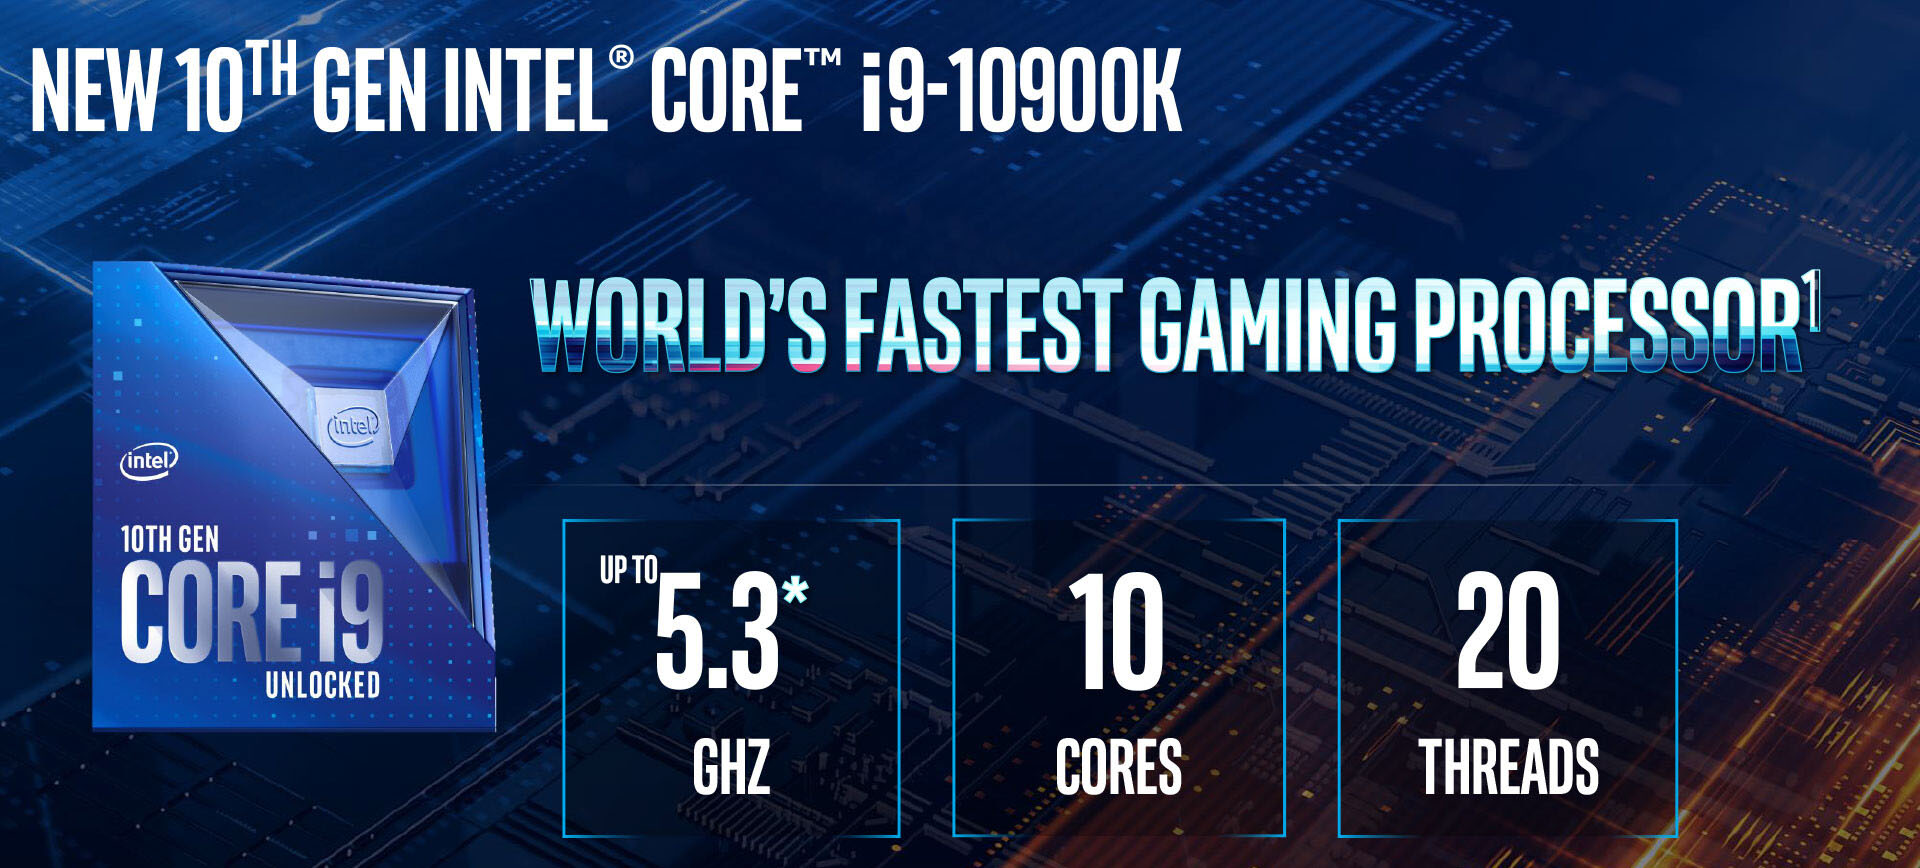 CPU Intel Core i9-10900K (3.70 GHz up to 5.30 GHz / 10C 20T / 20M Cache, Comet Lake-S)